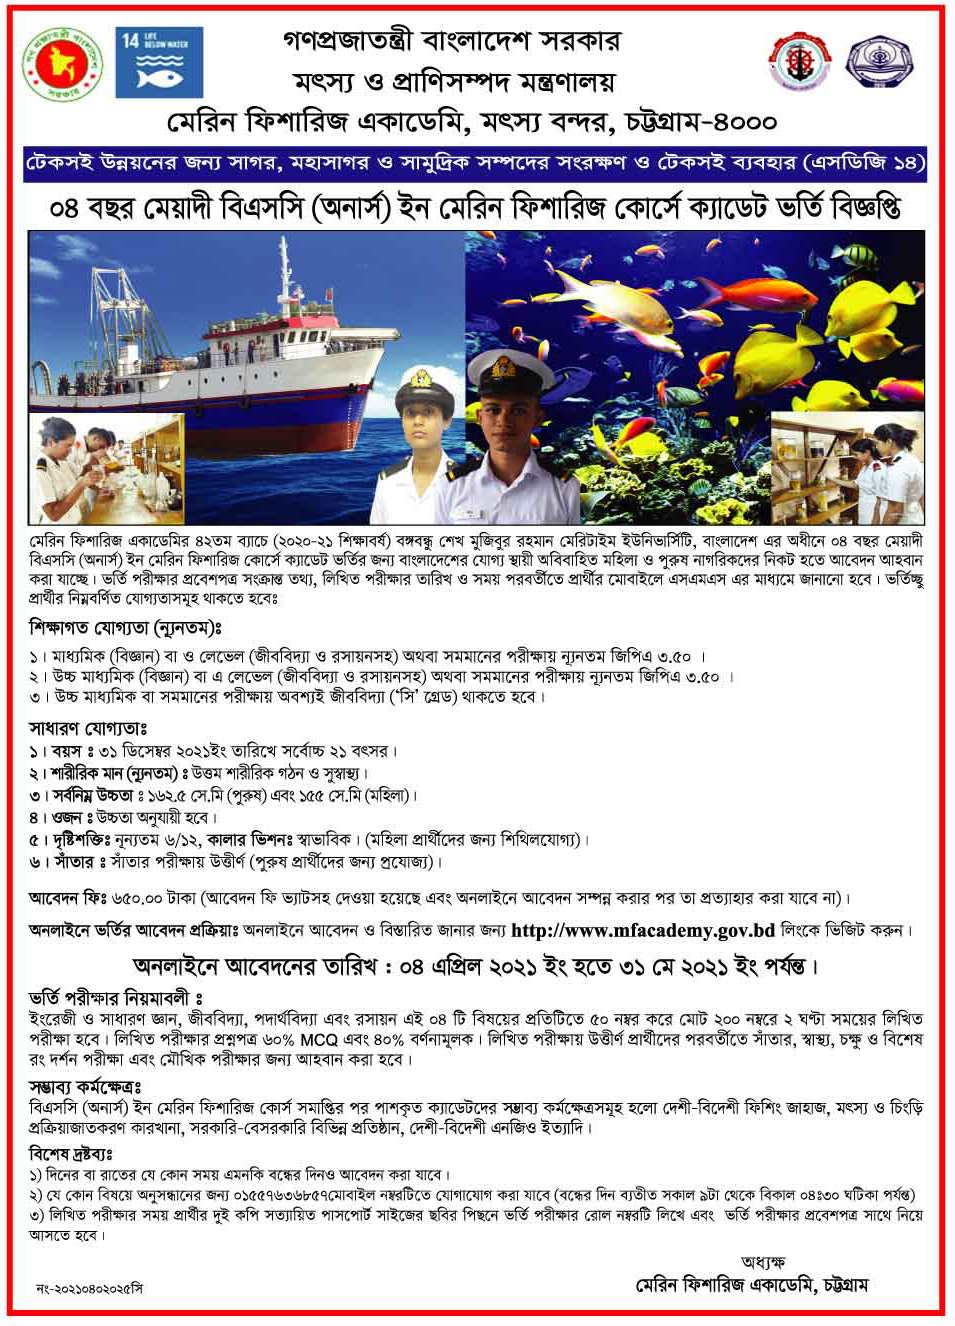 Bangladesh Marine Fisheries Academy 42nd Batch for 4 years BSC Admission Circular